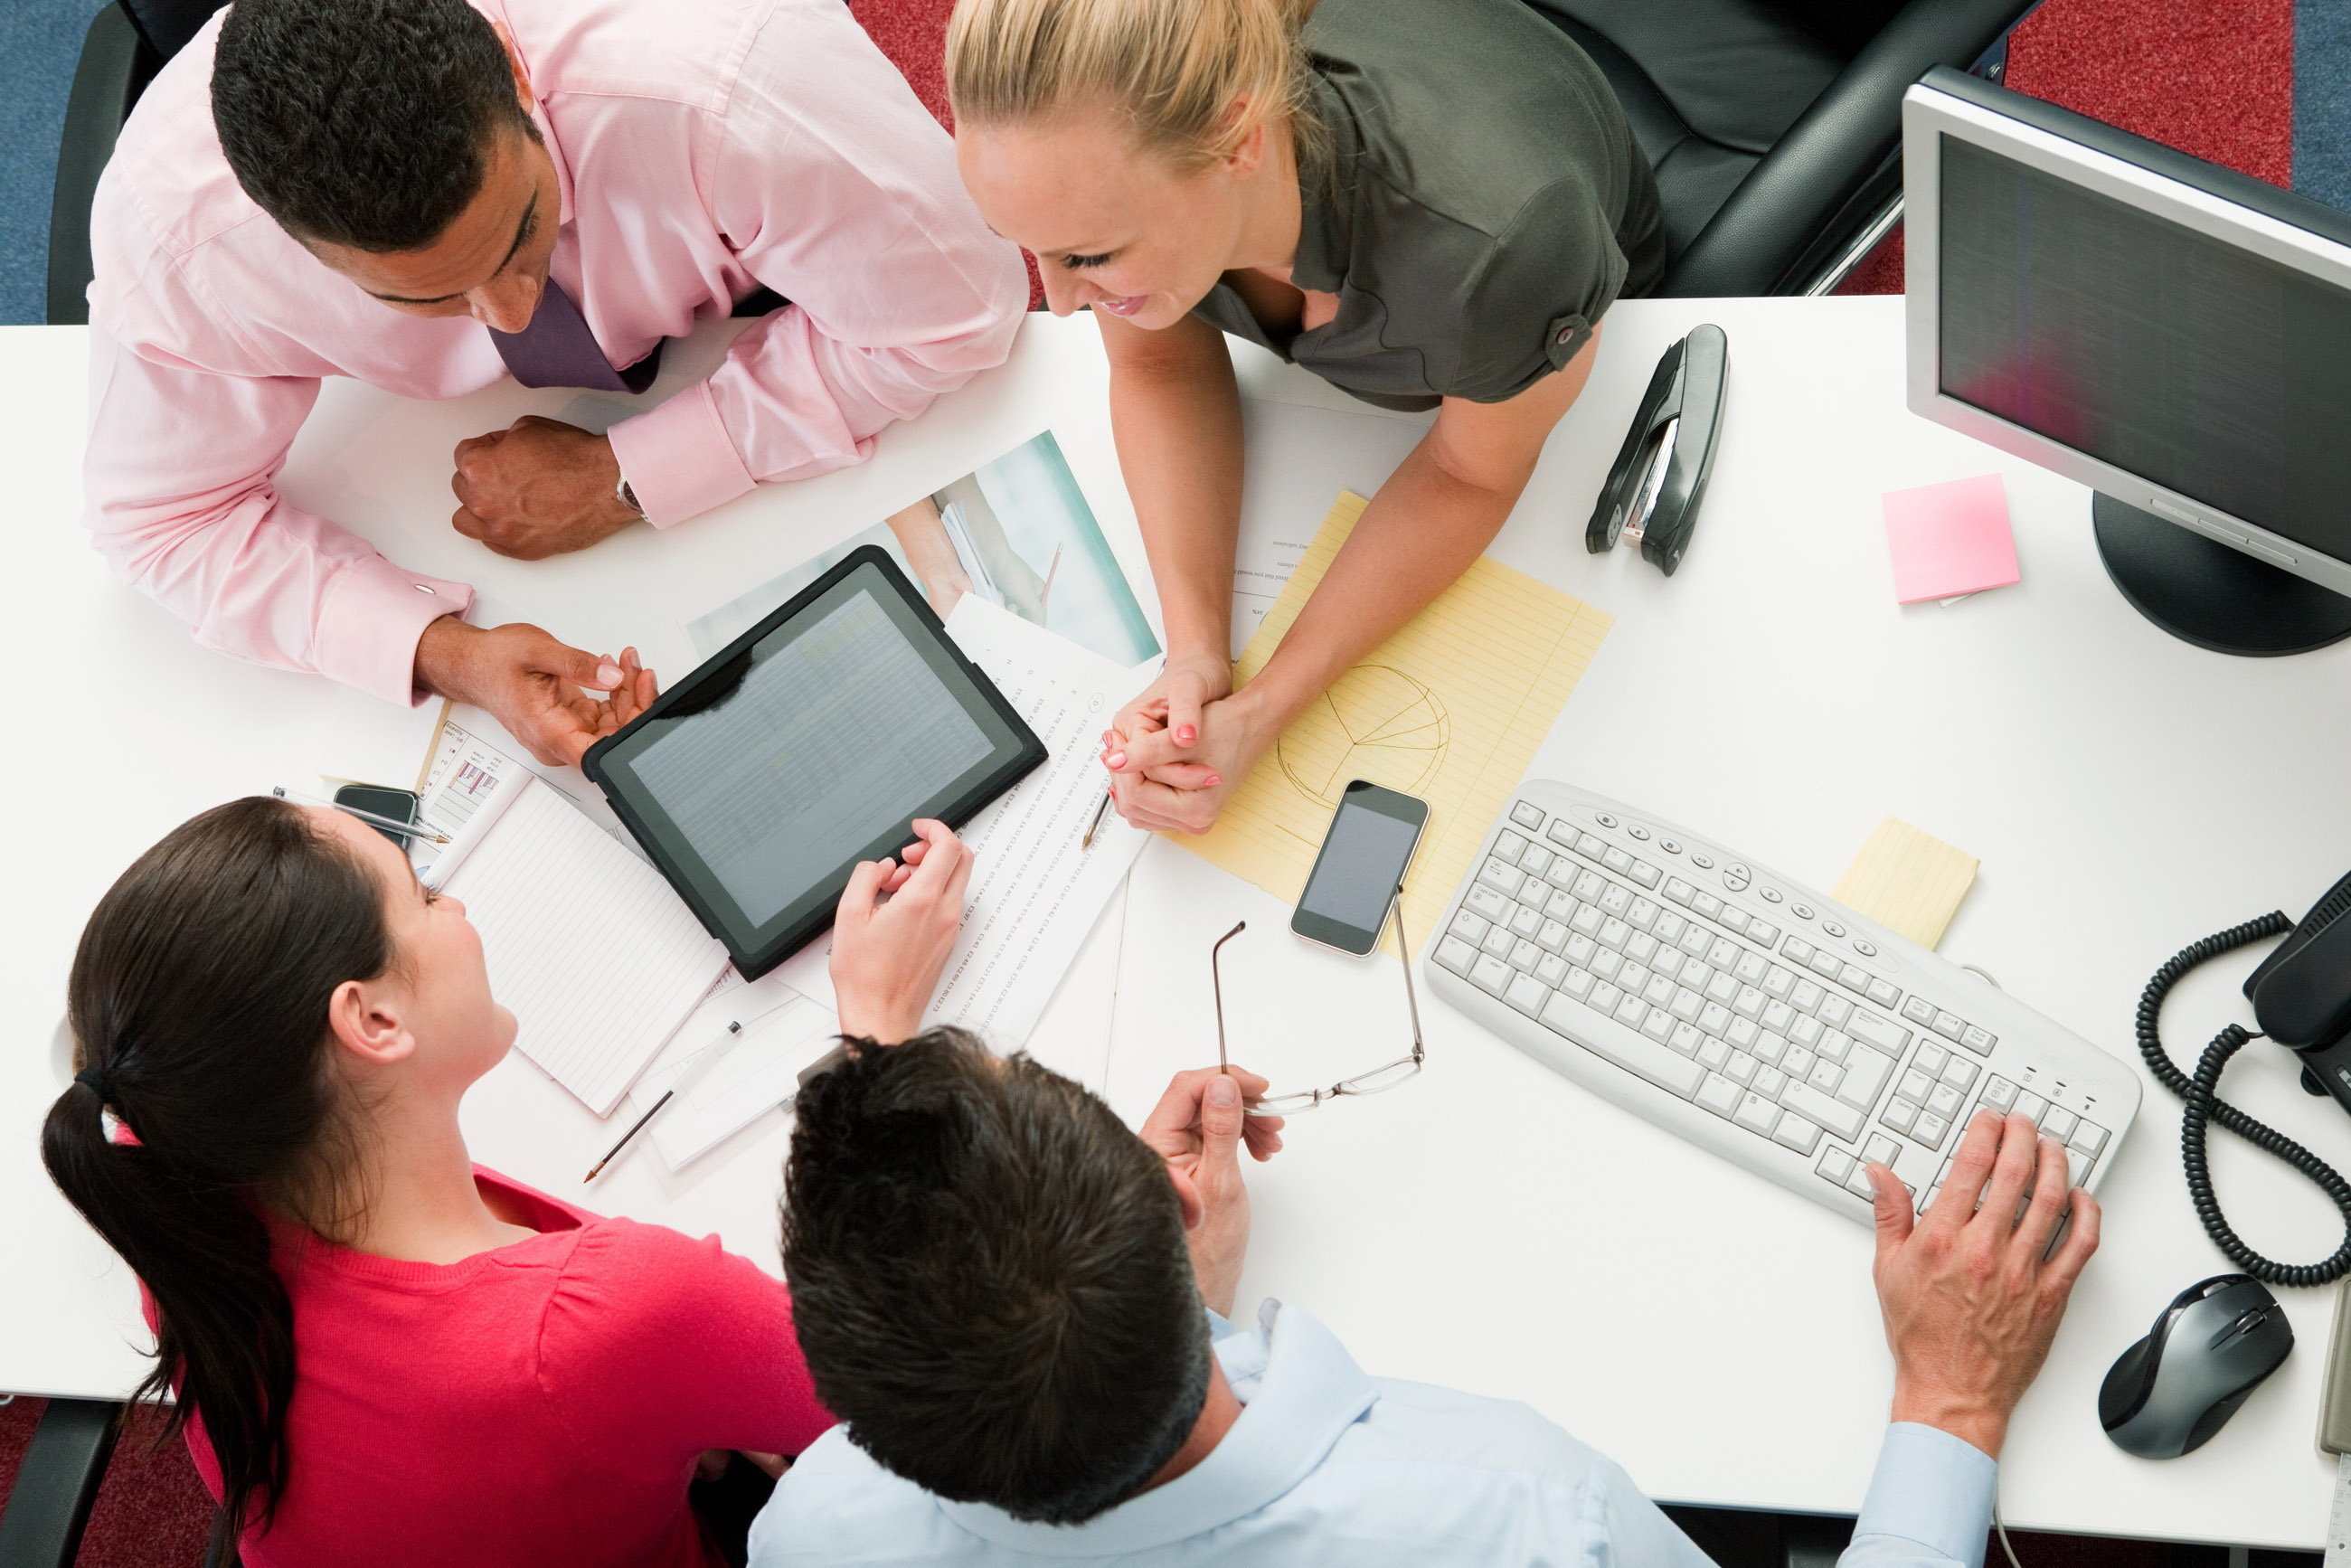 Team Collaboration Is Key for Success